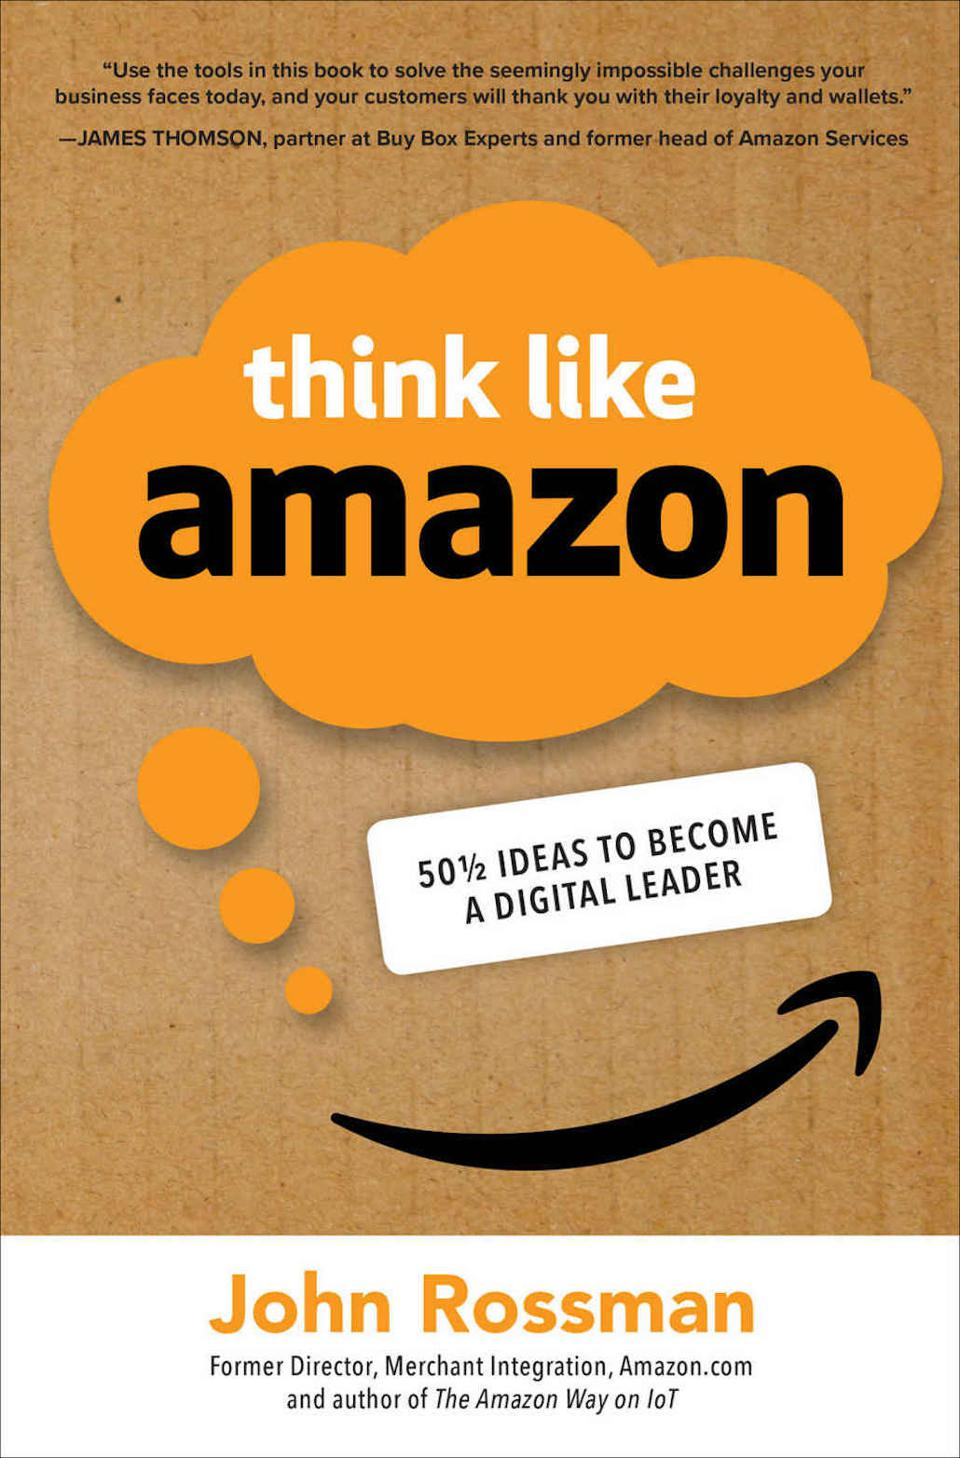 Think Like Amazon: 50½ Ideas to Become a Digital Leader by John Rossman